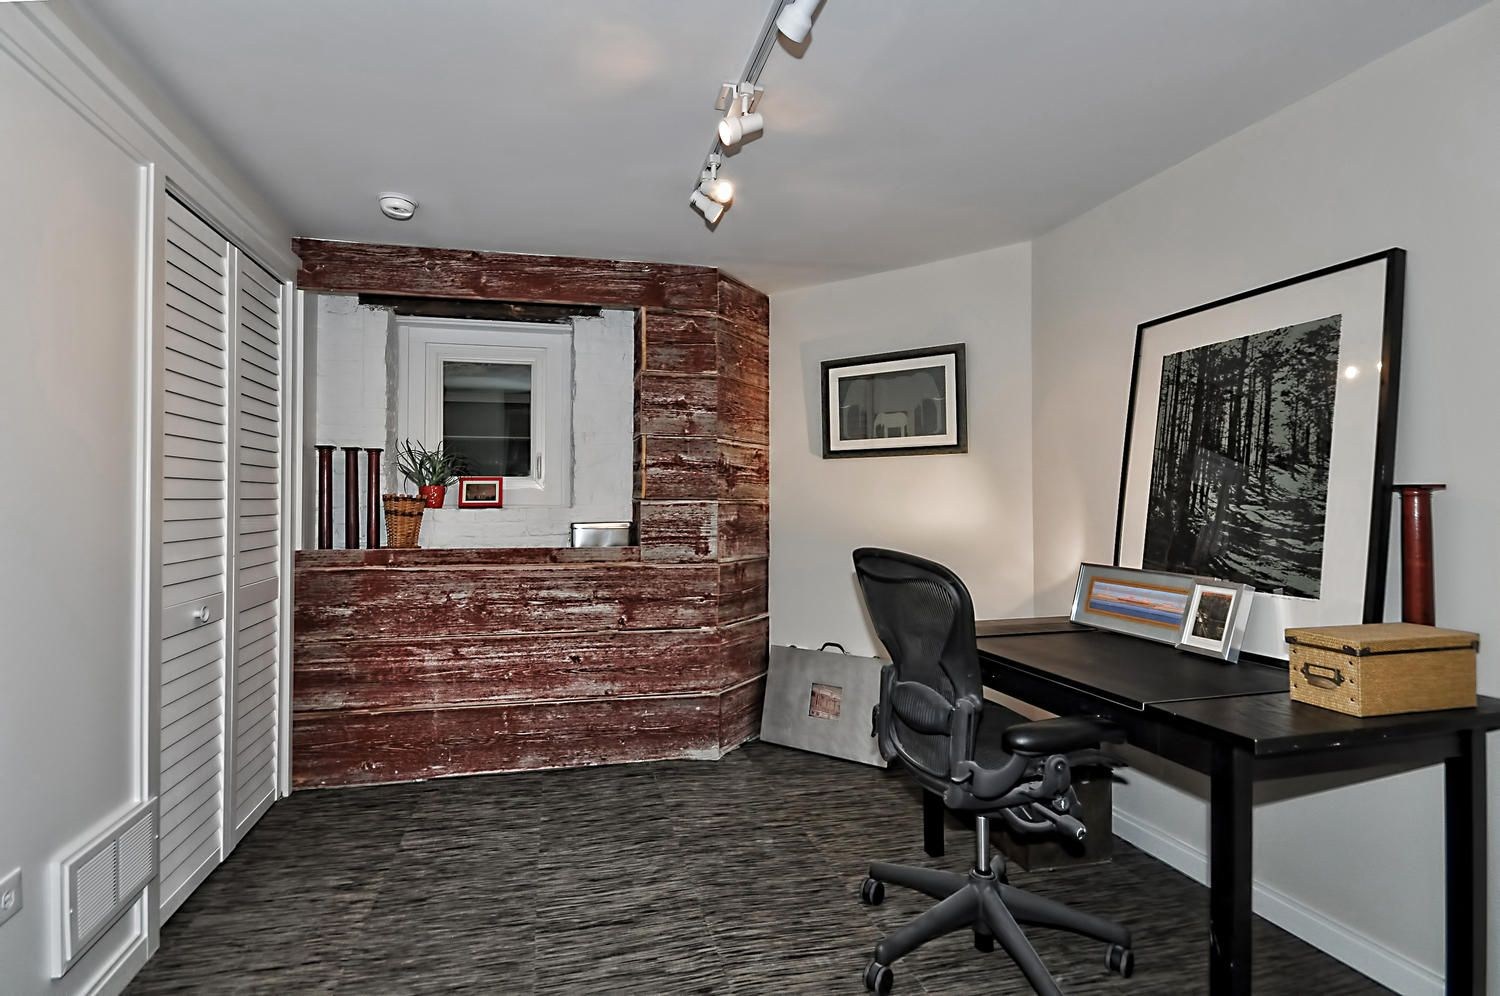 Bedroom #4: Barnwood Walls, Exposed Brick, Chilewich Flooring, , Painted White Brick Walls. 4502 N Magnolia Unit 1N Sheridan Park - Uptown - Chicago, Illinois - Christian Schaller Johnson Roberts Associates Architects Inc. 2015 For sale @ $485,000